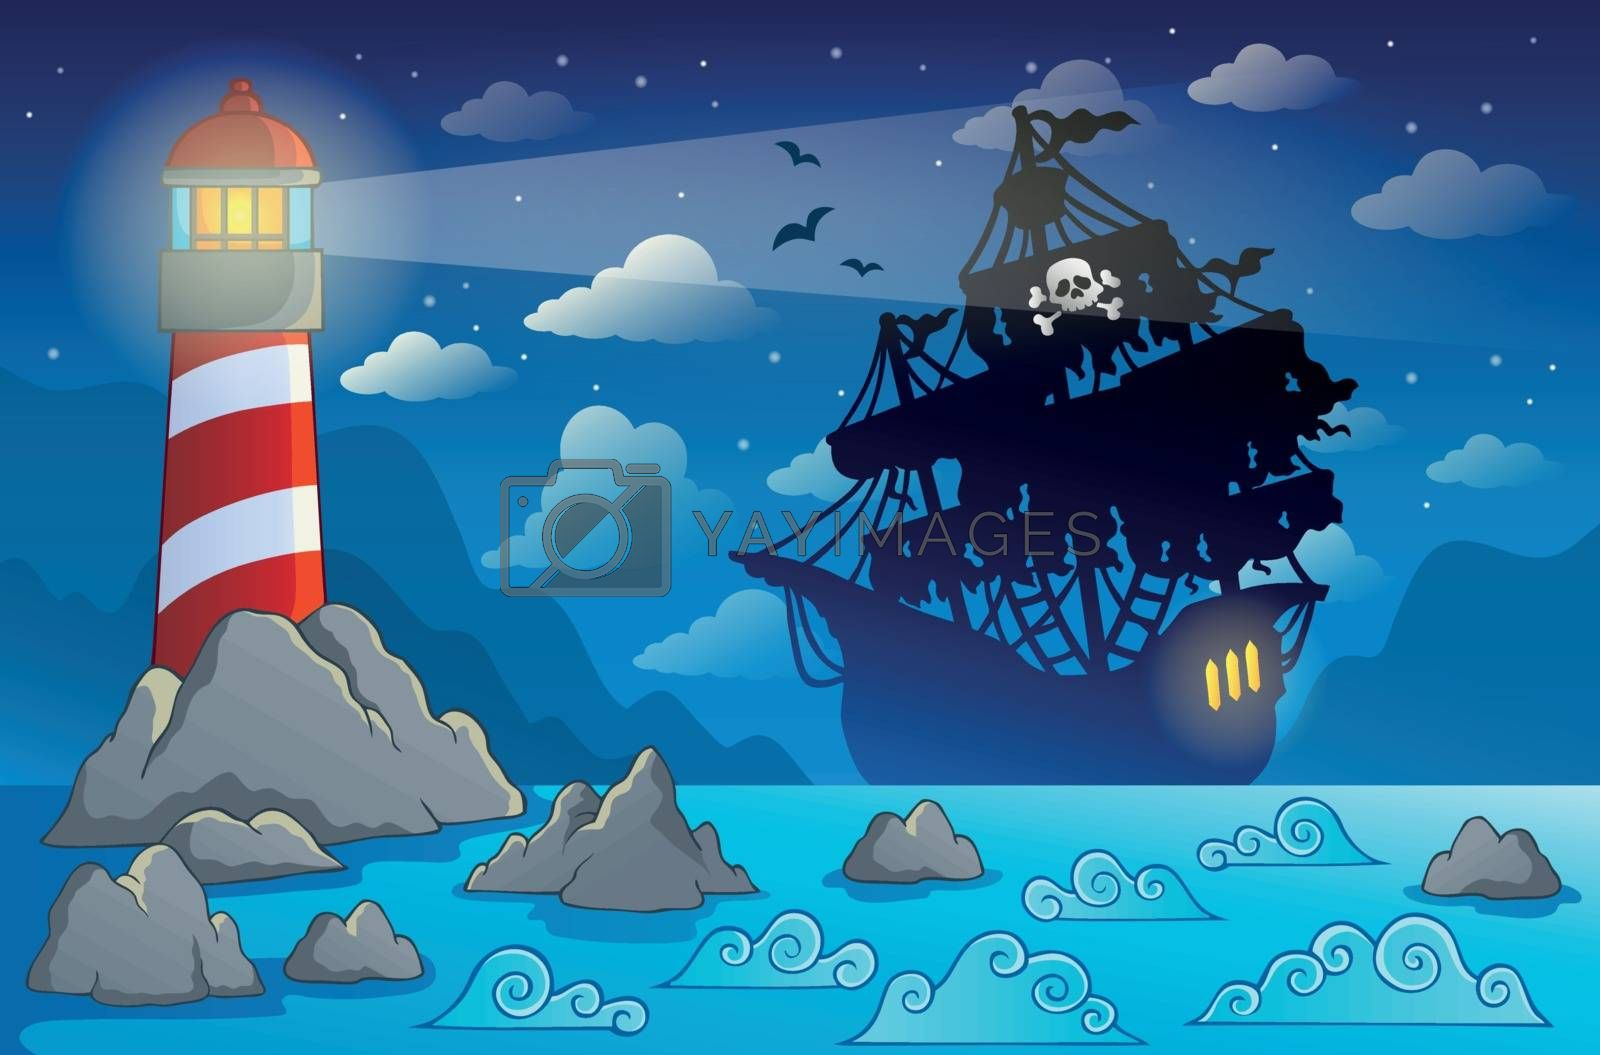 Royalty free image of Pirate ship silhouette near coast 1 by clairev